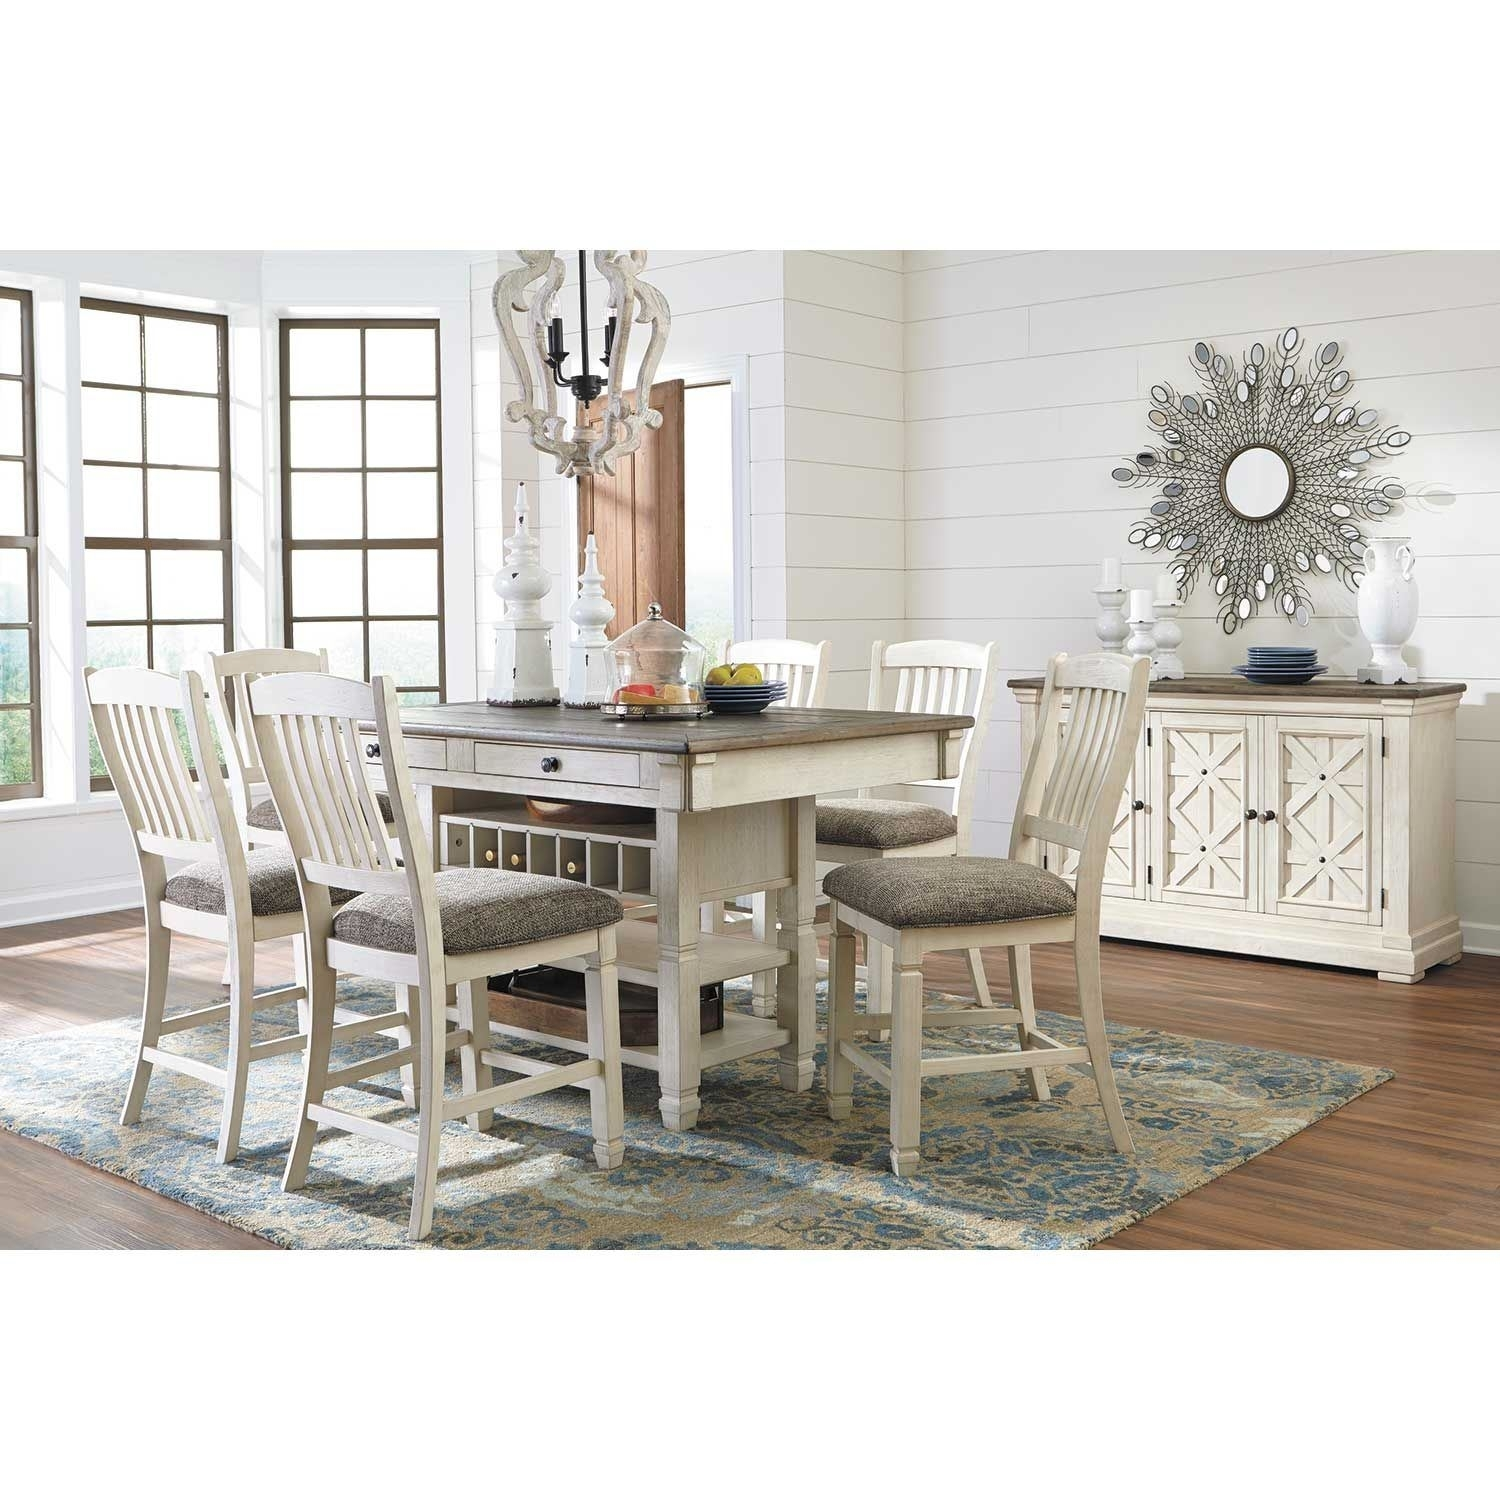 Bolanburg Counter Height Table D647 32 | Ashley Furniture | Afw Throughout Most Up To Date Market 6 Piece Dining Sets With Host And Side Chairs (View 10 of 20)